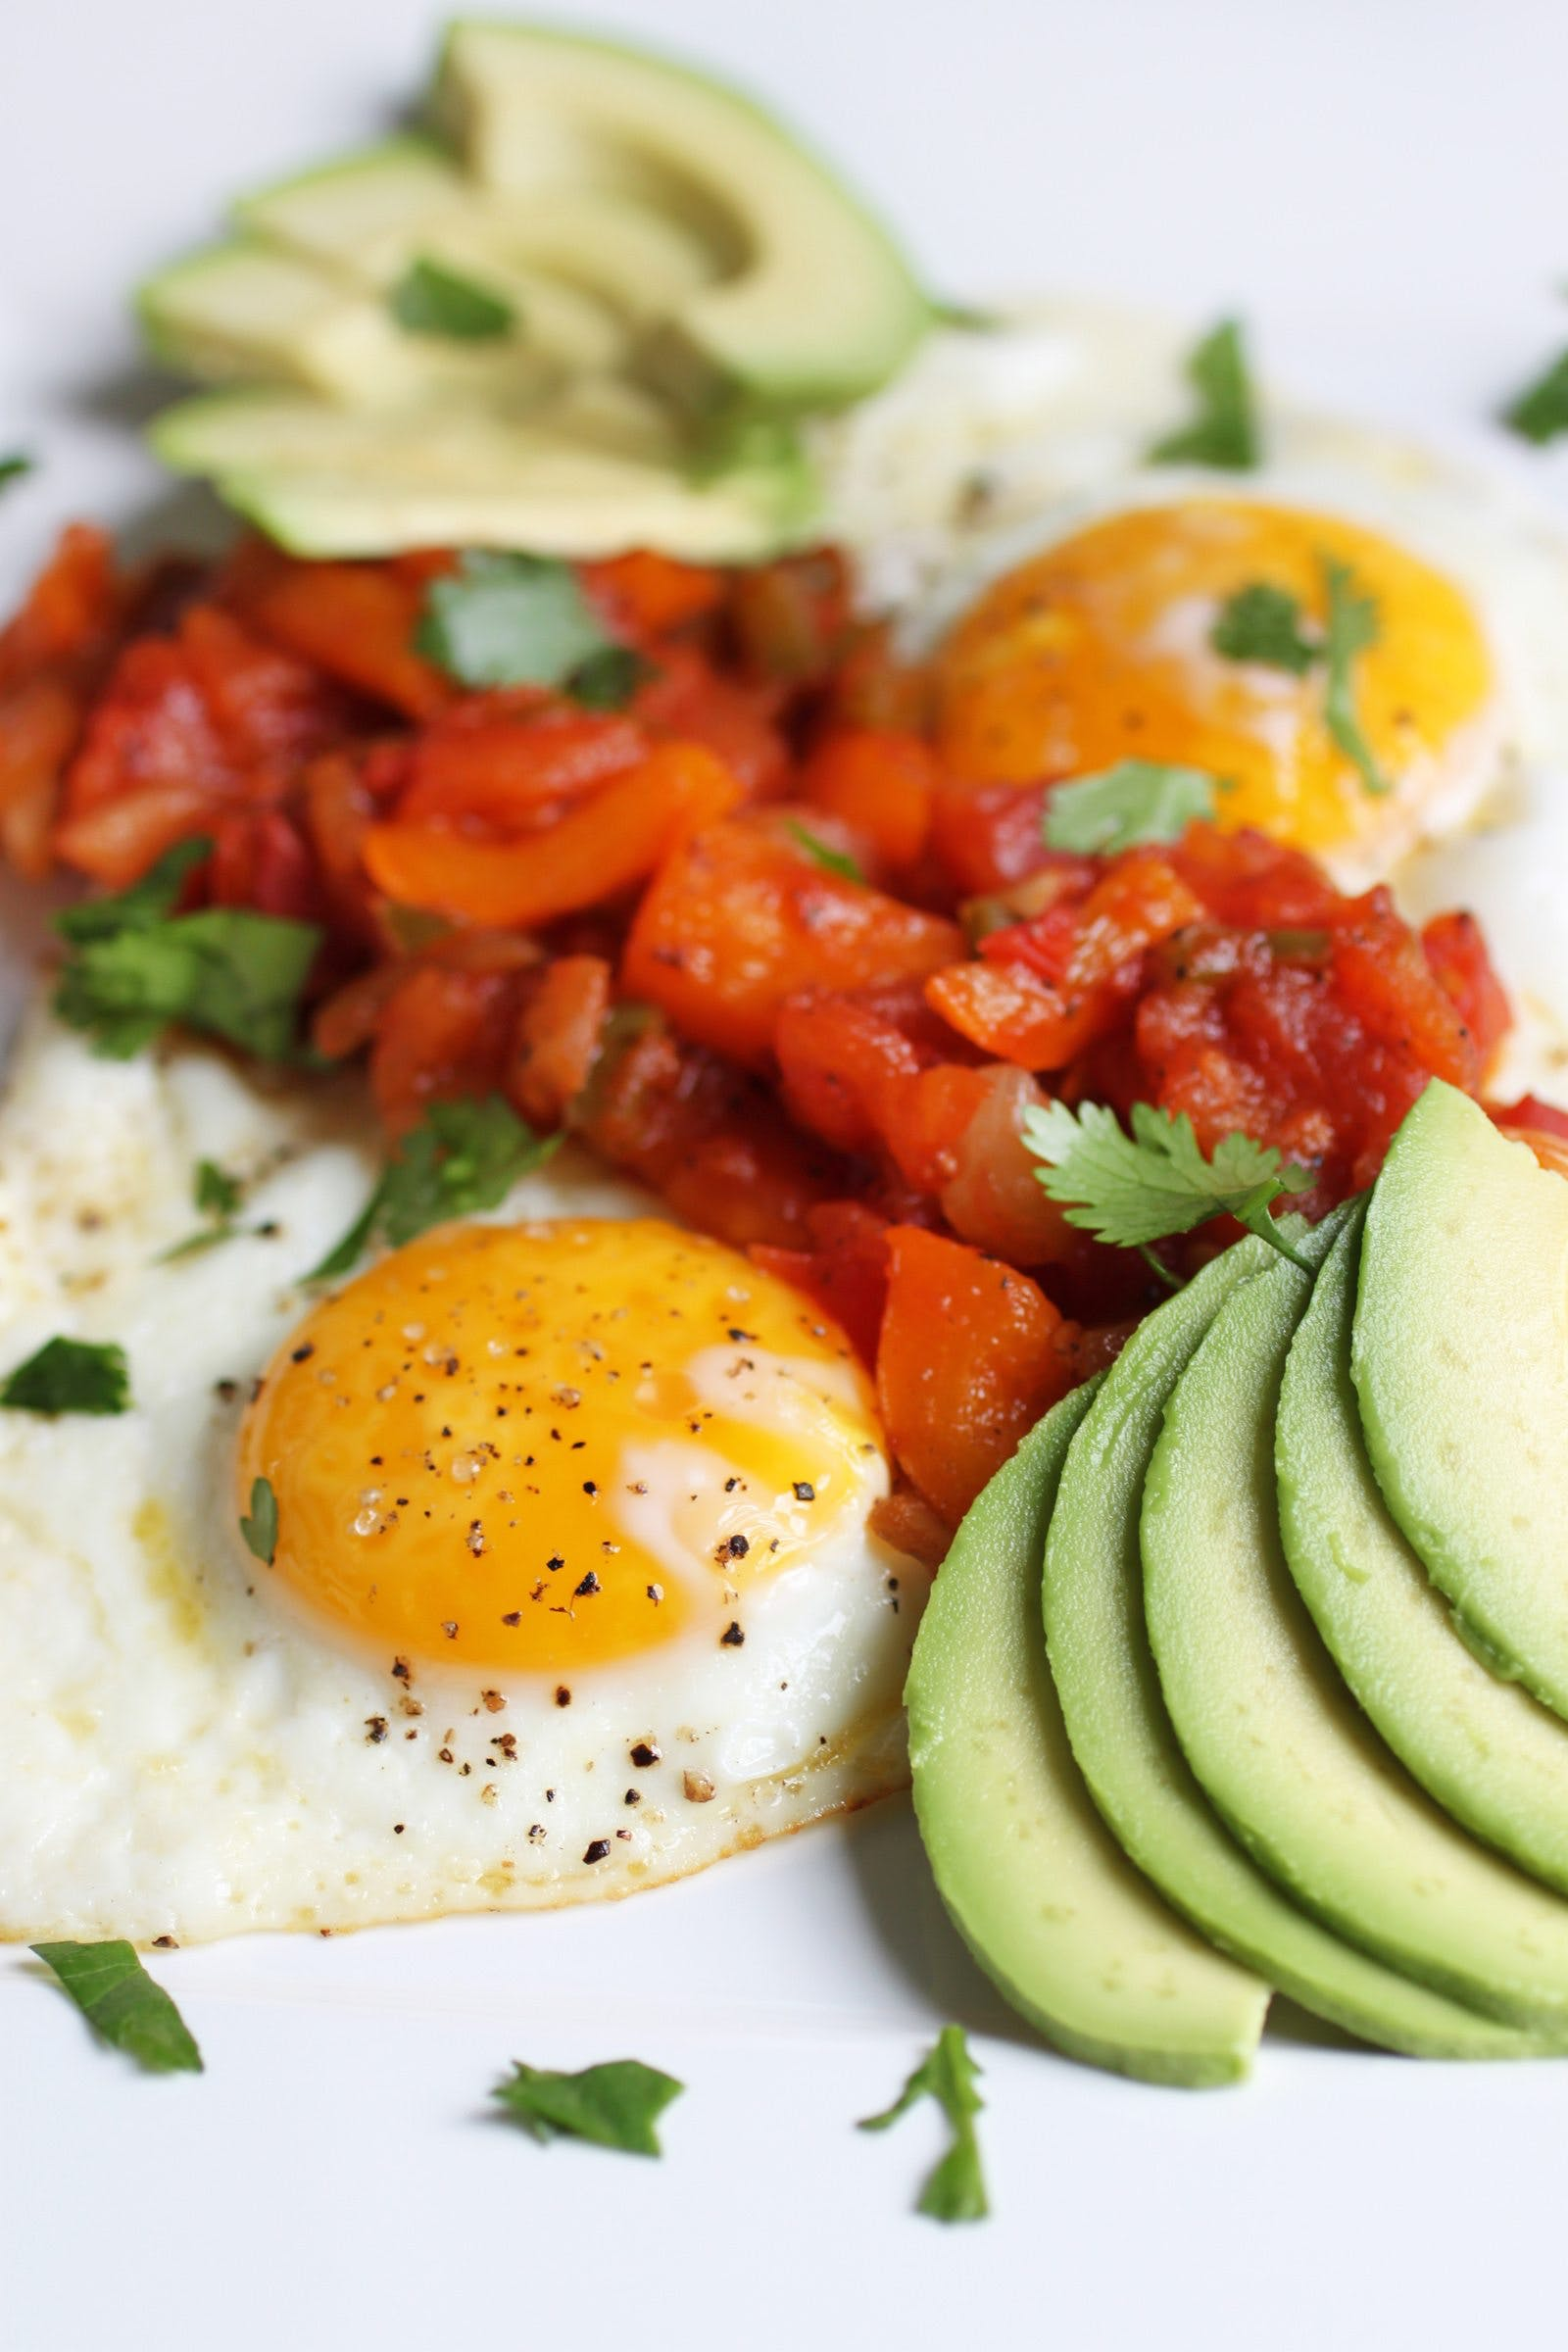 Low-carb huevos rancheros